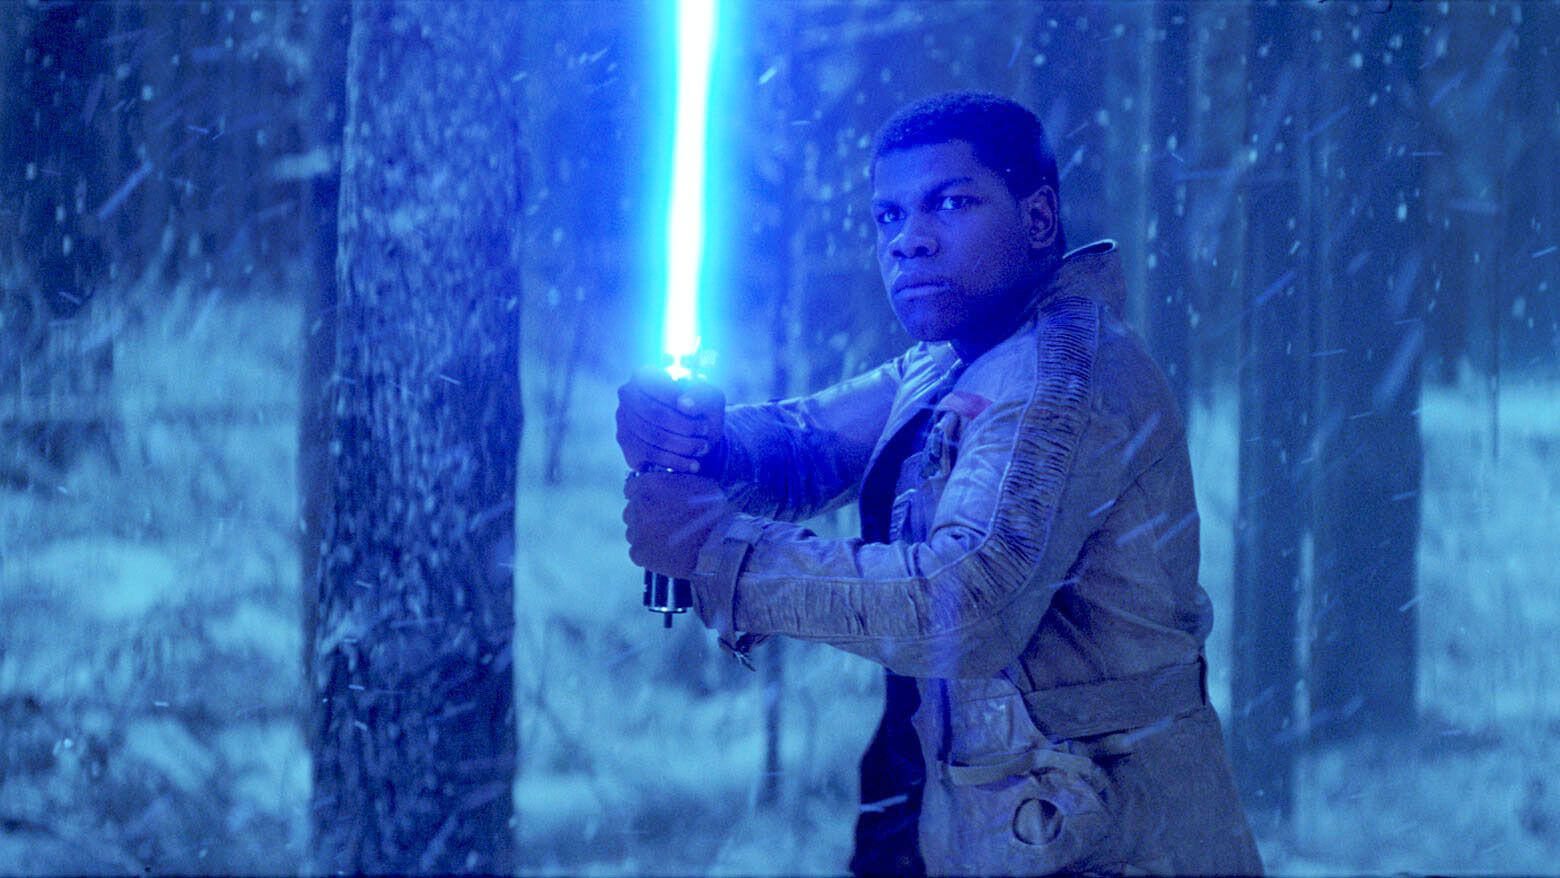 What is a Protagonist in a Story - Star Wars The Force Awakens